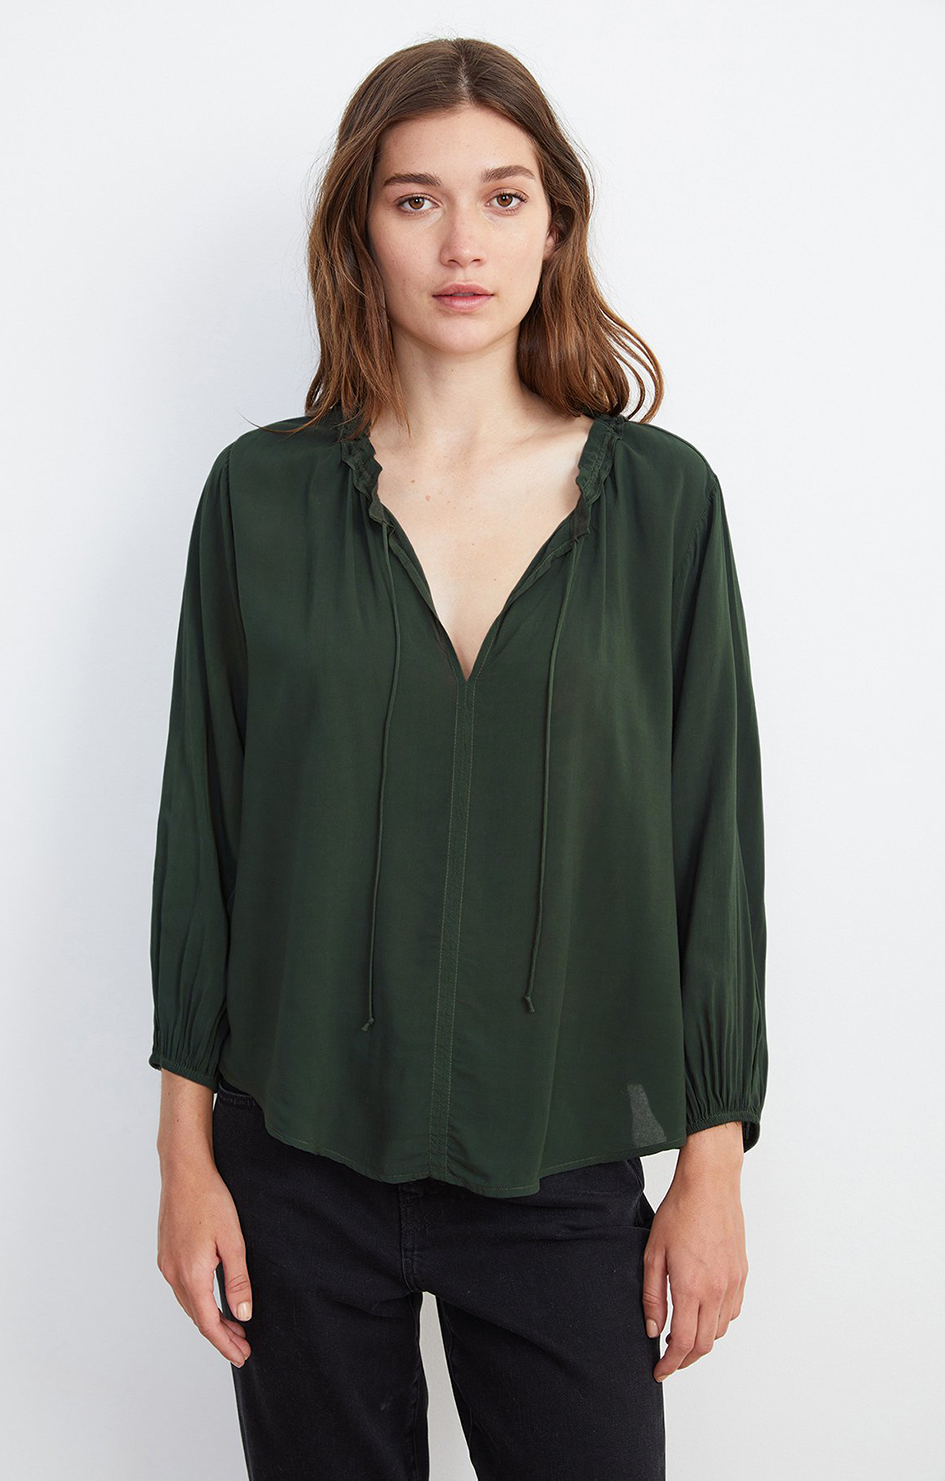 Marty 3/4 Sleeve Top In Army